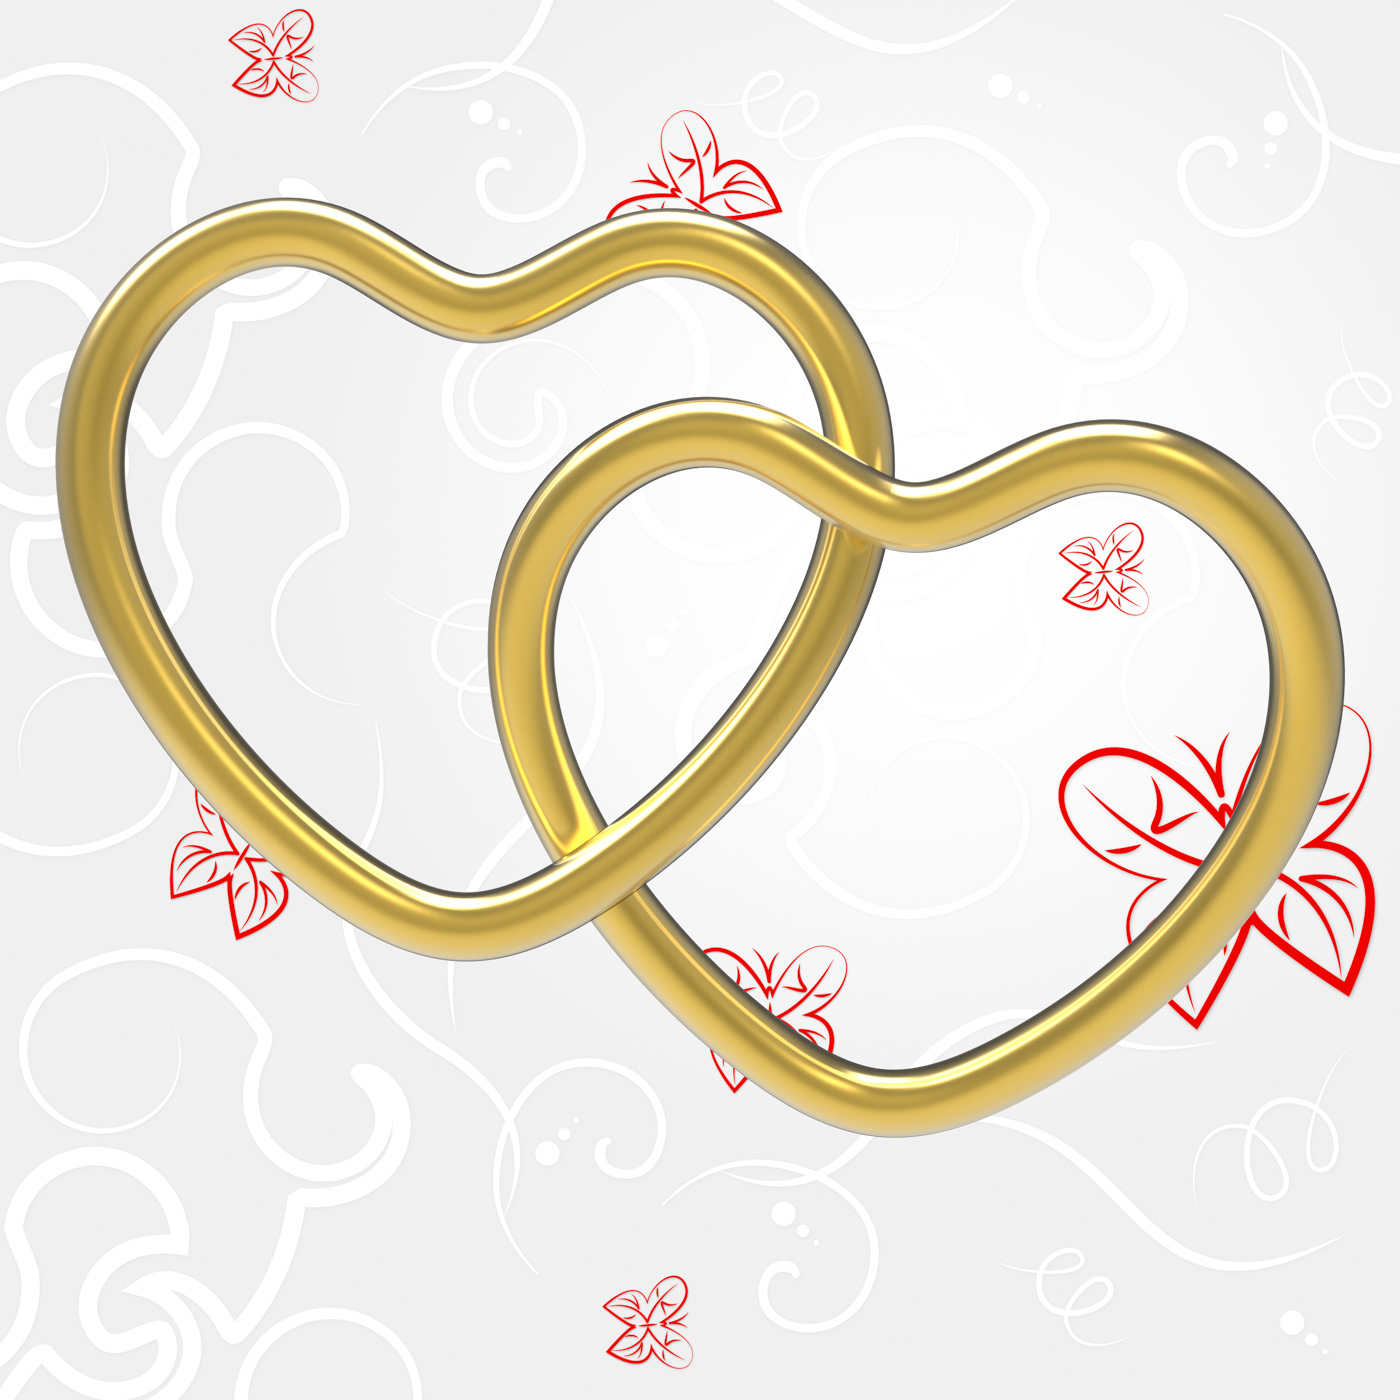 Wedding rings indicates valentines day and couple photo